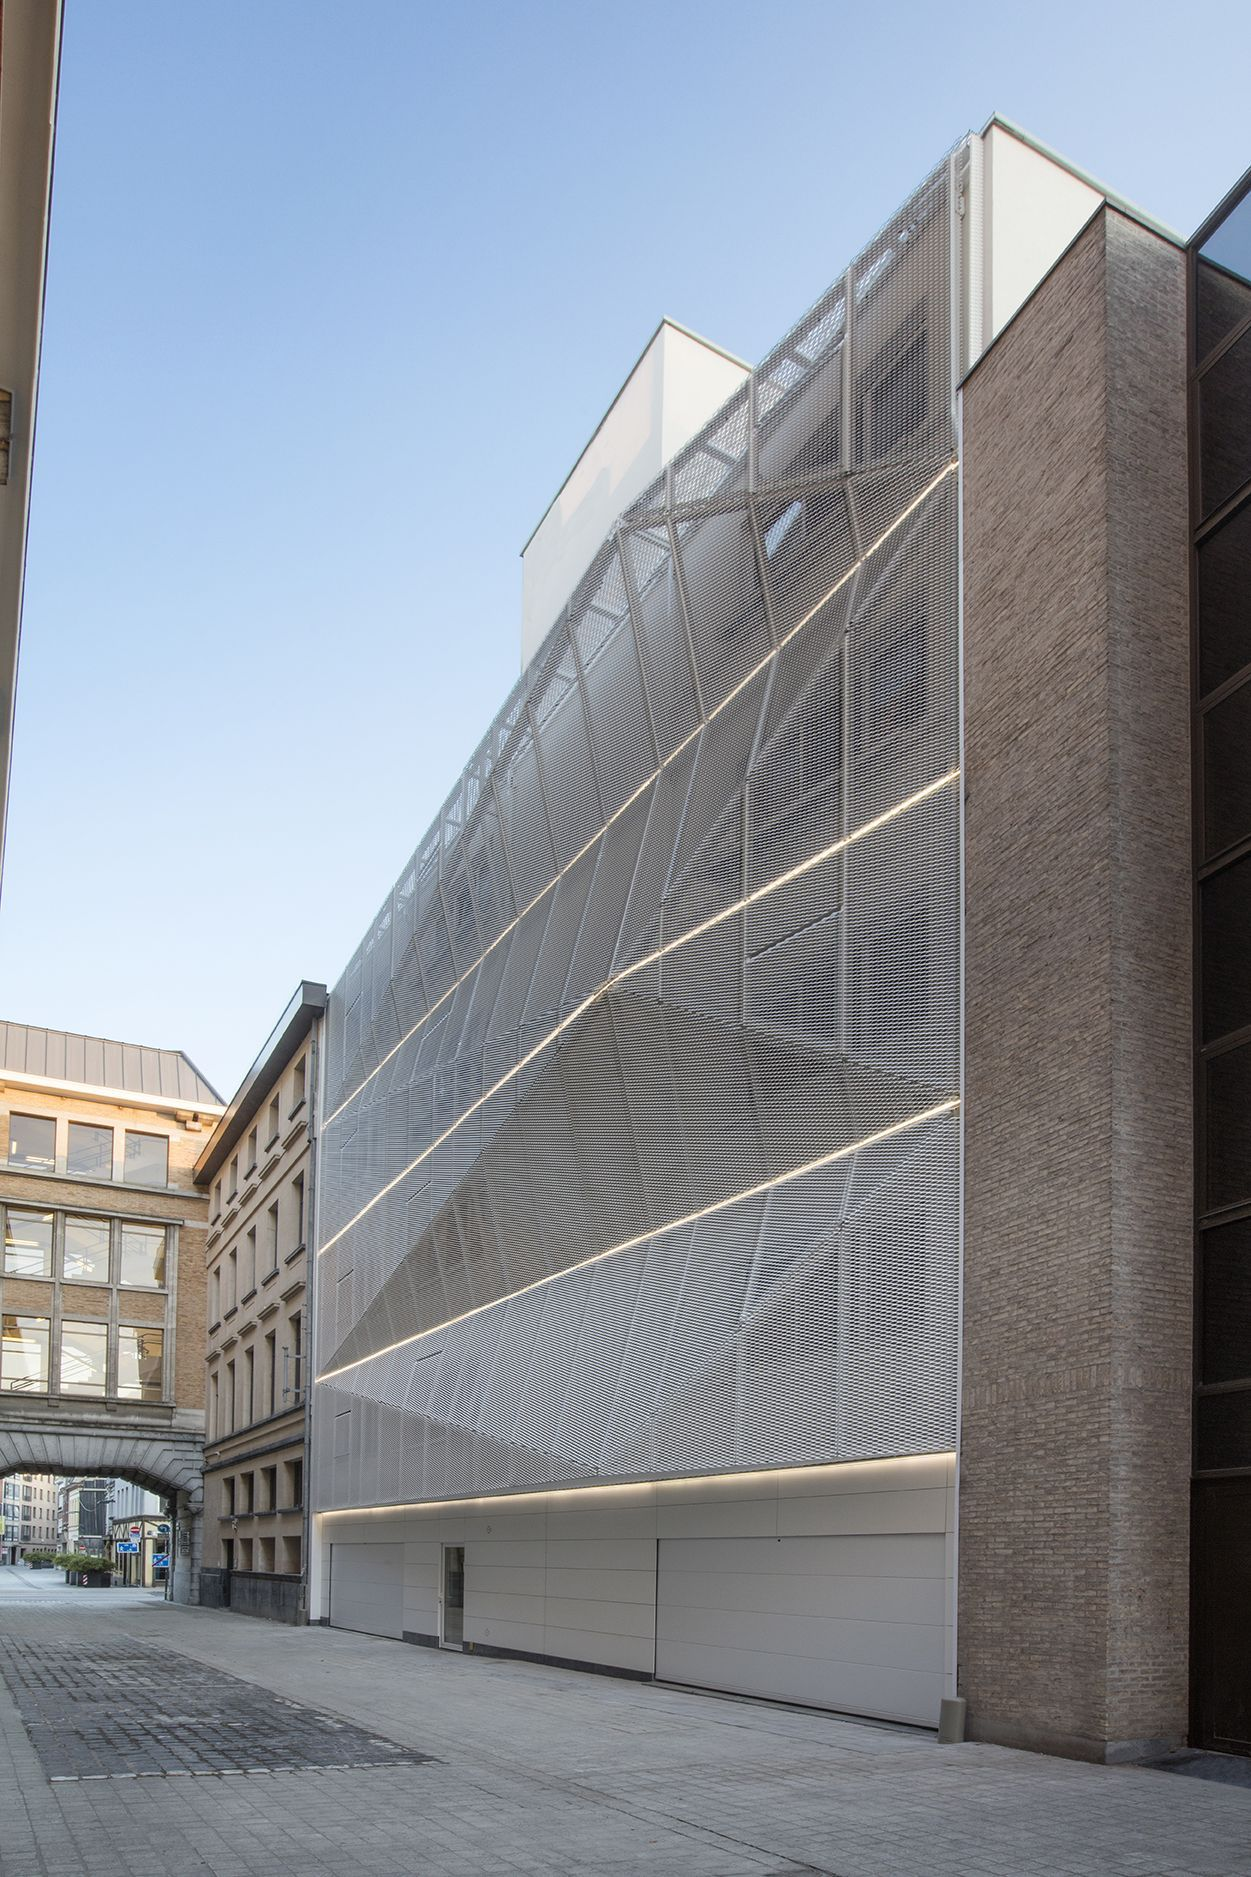 Student housing with an expanded metal mesh facade created by ensemble one stop office